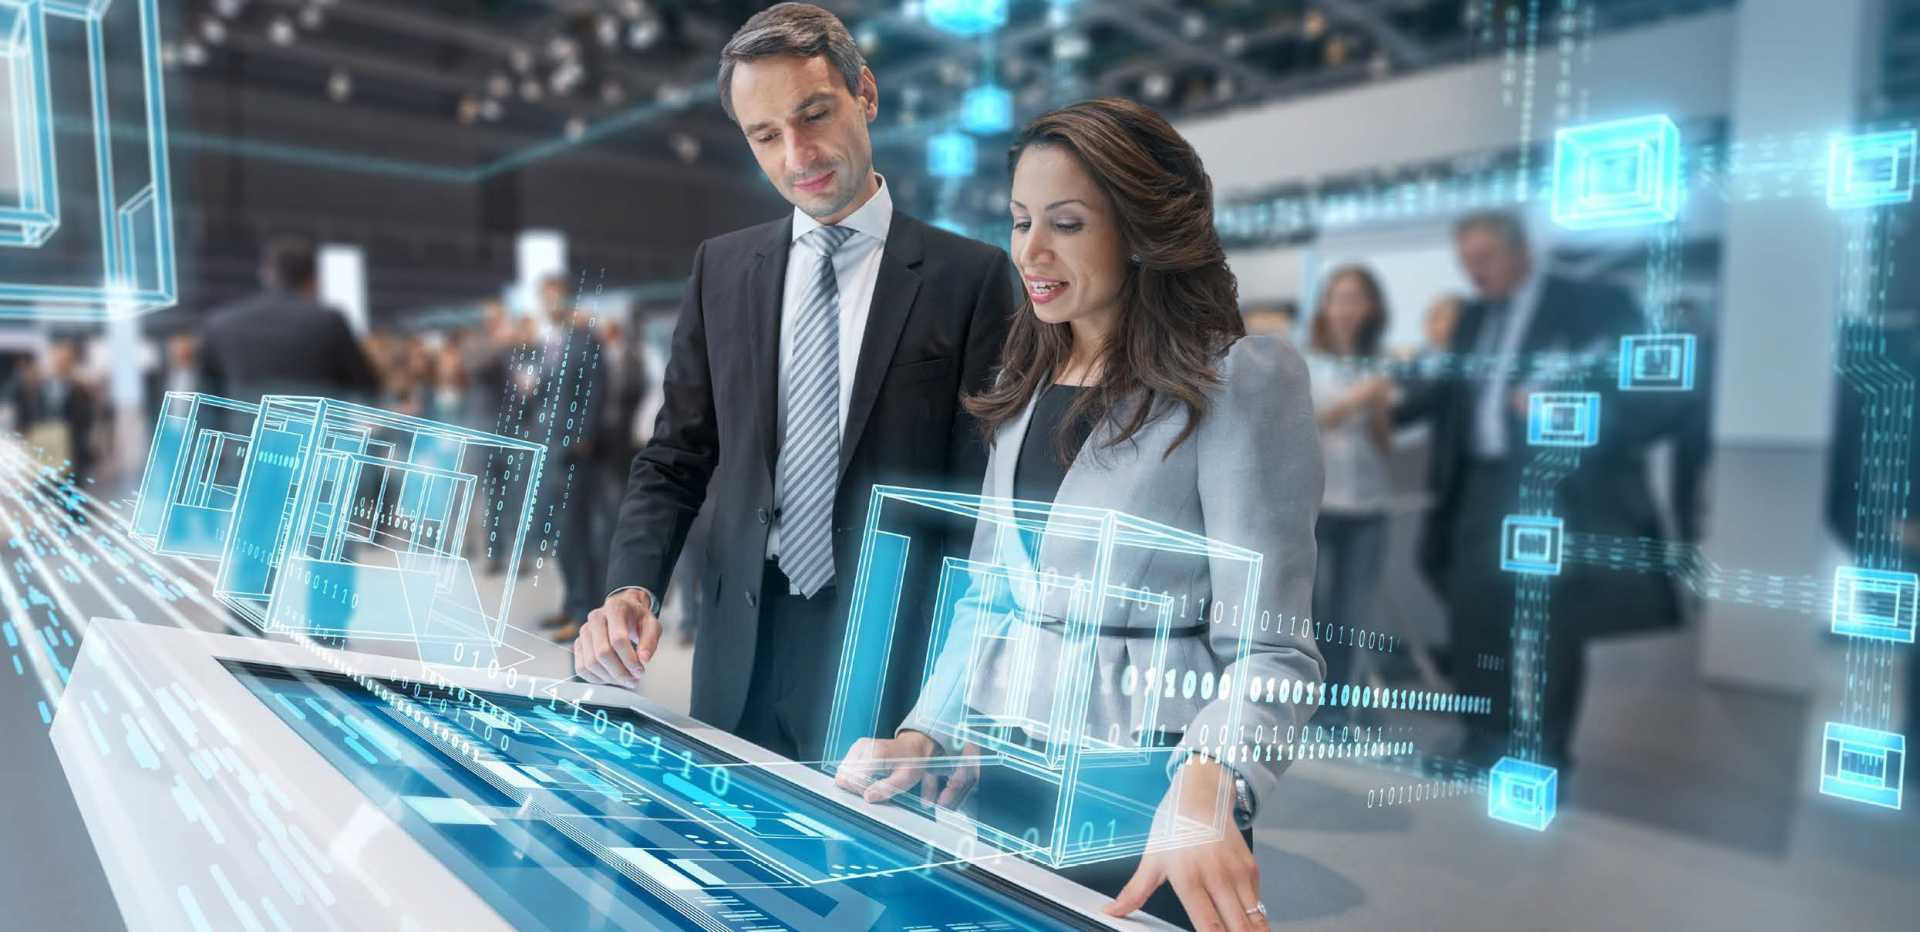 Mindsphere creates a closed feedback loop that sends production data back up the line to enable production to be streamlined and kinks to be ironed out – image courtesy of Siemens.